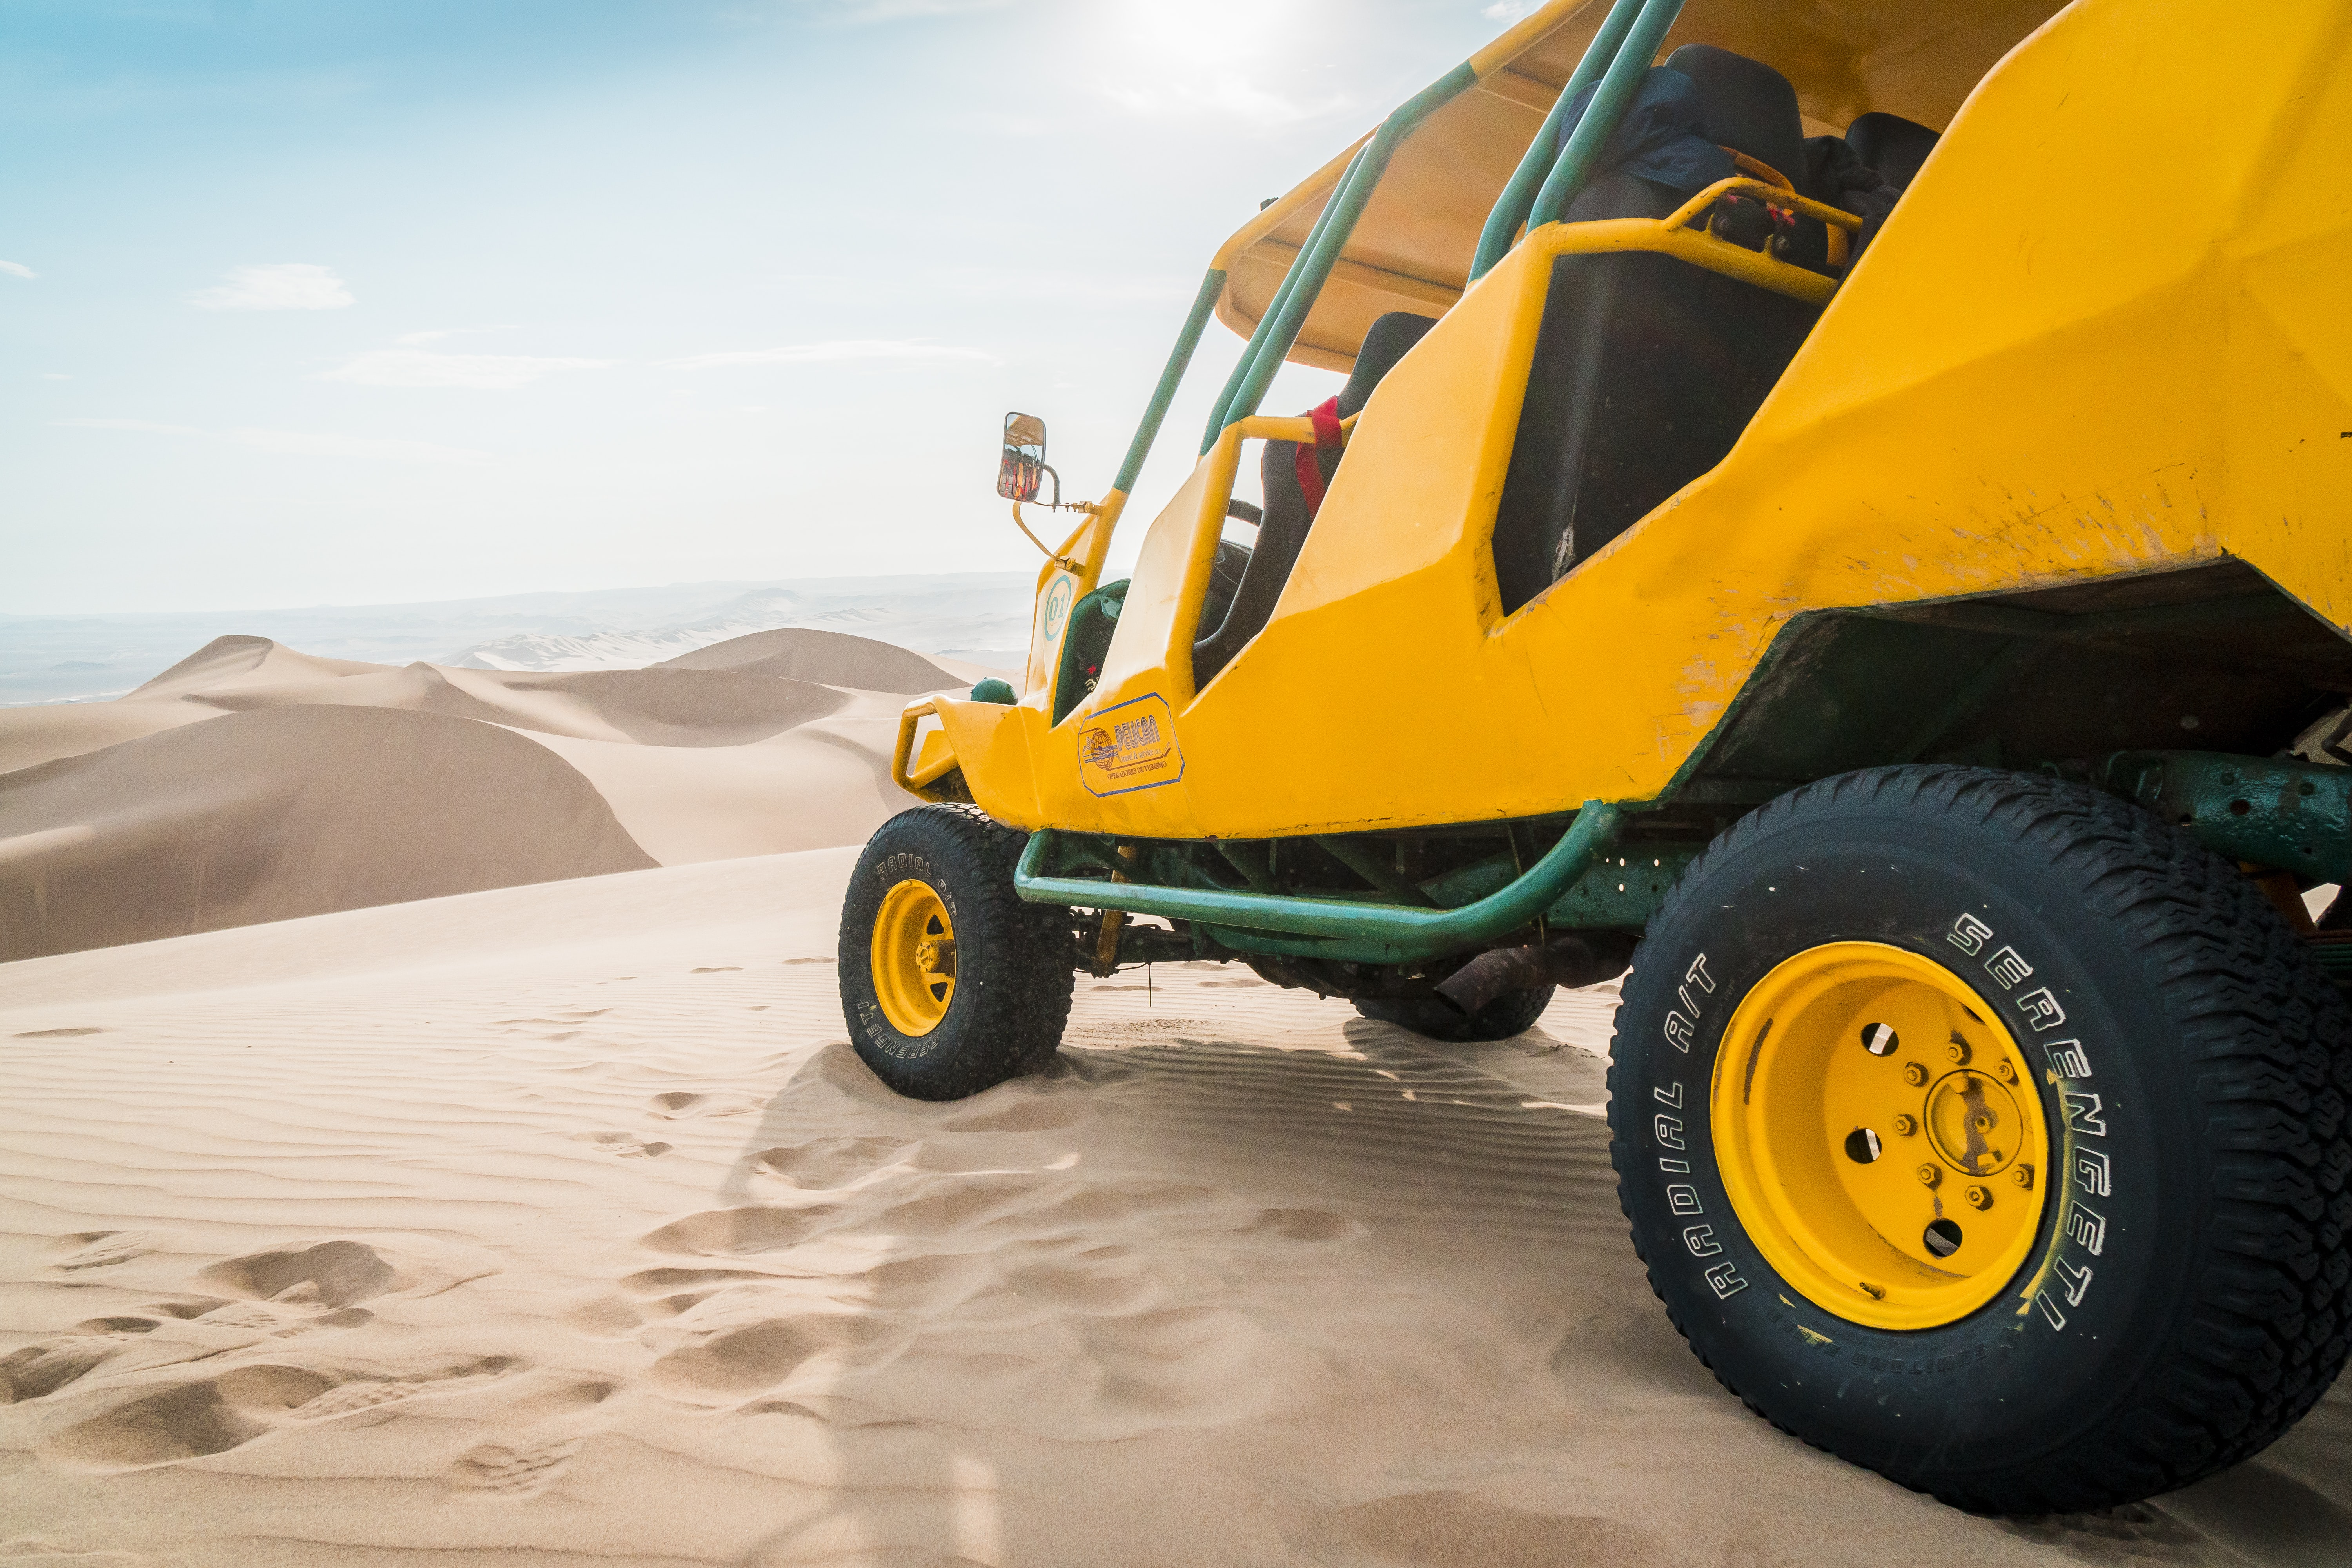 yellow and green UTV parked on a desert field